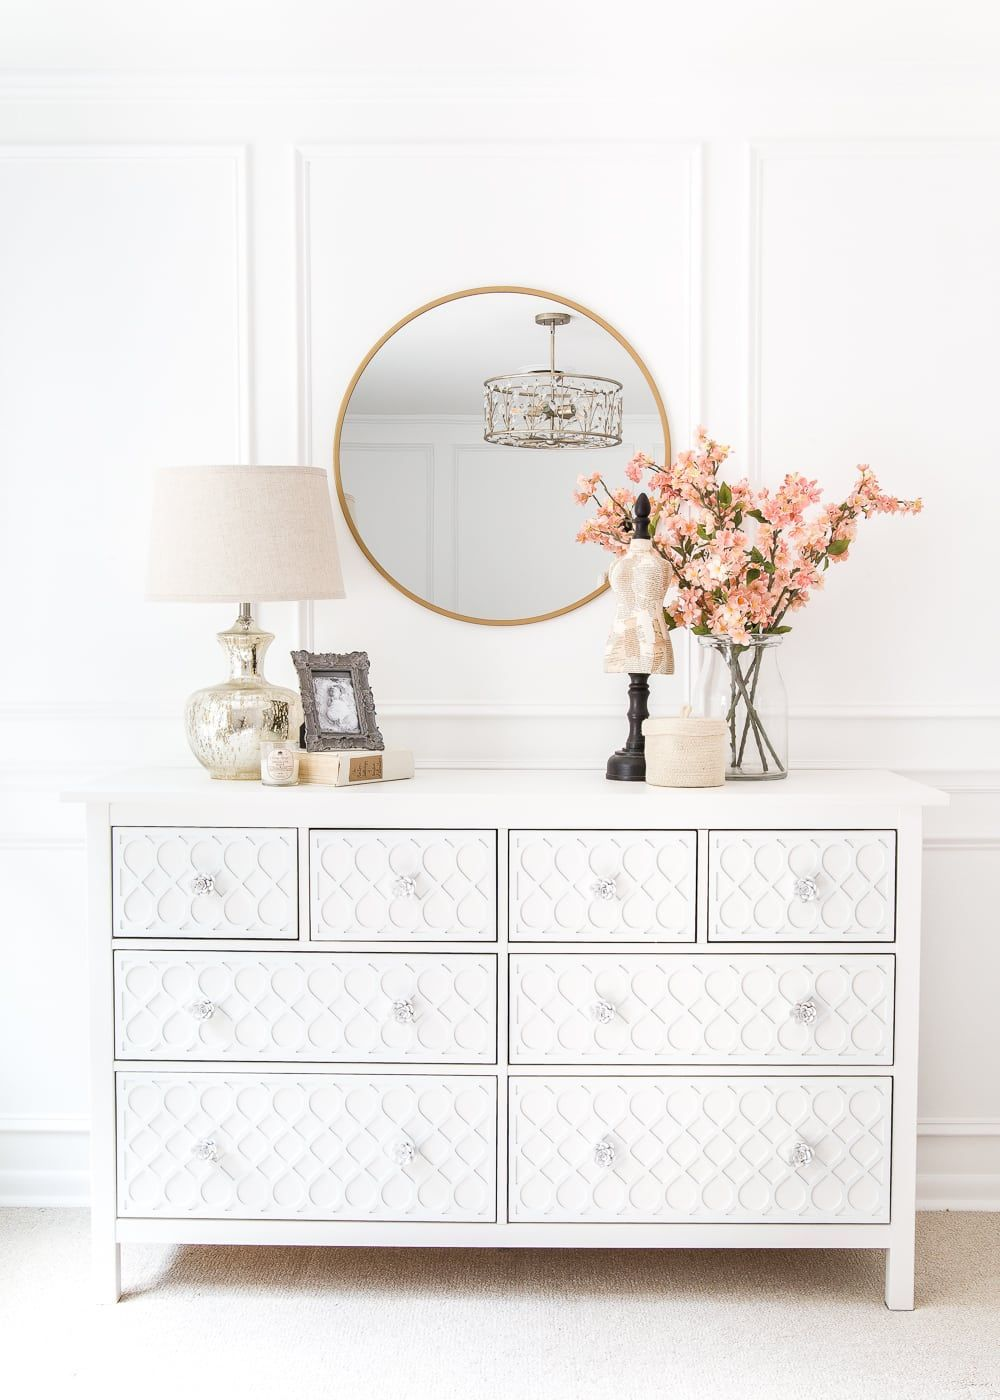 Photo of Applique IKEA Dresser Hack